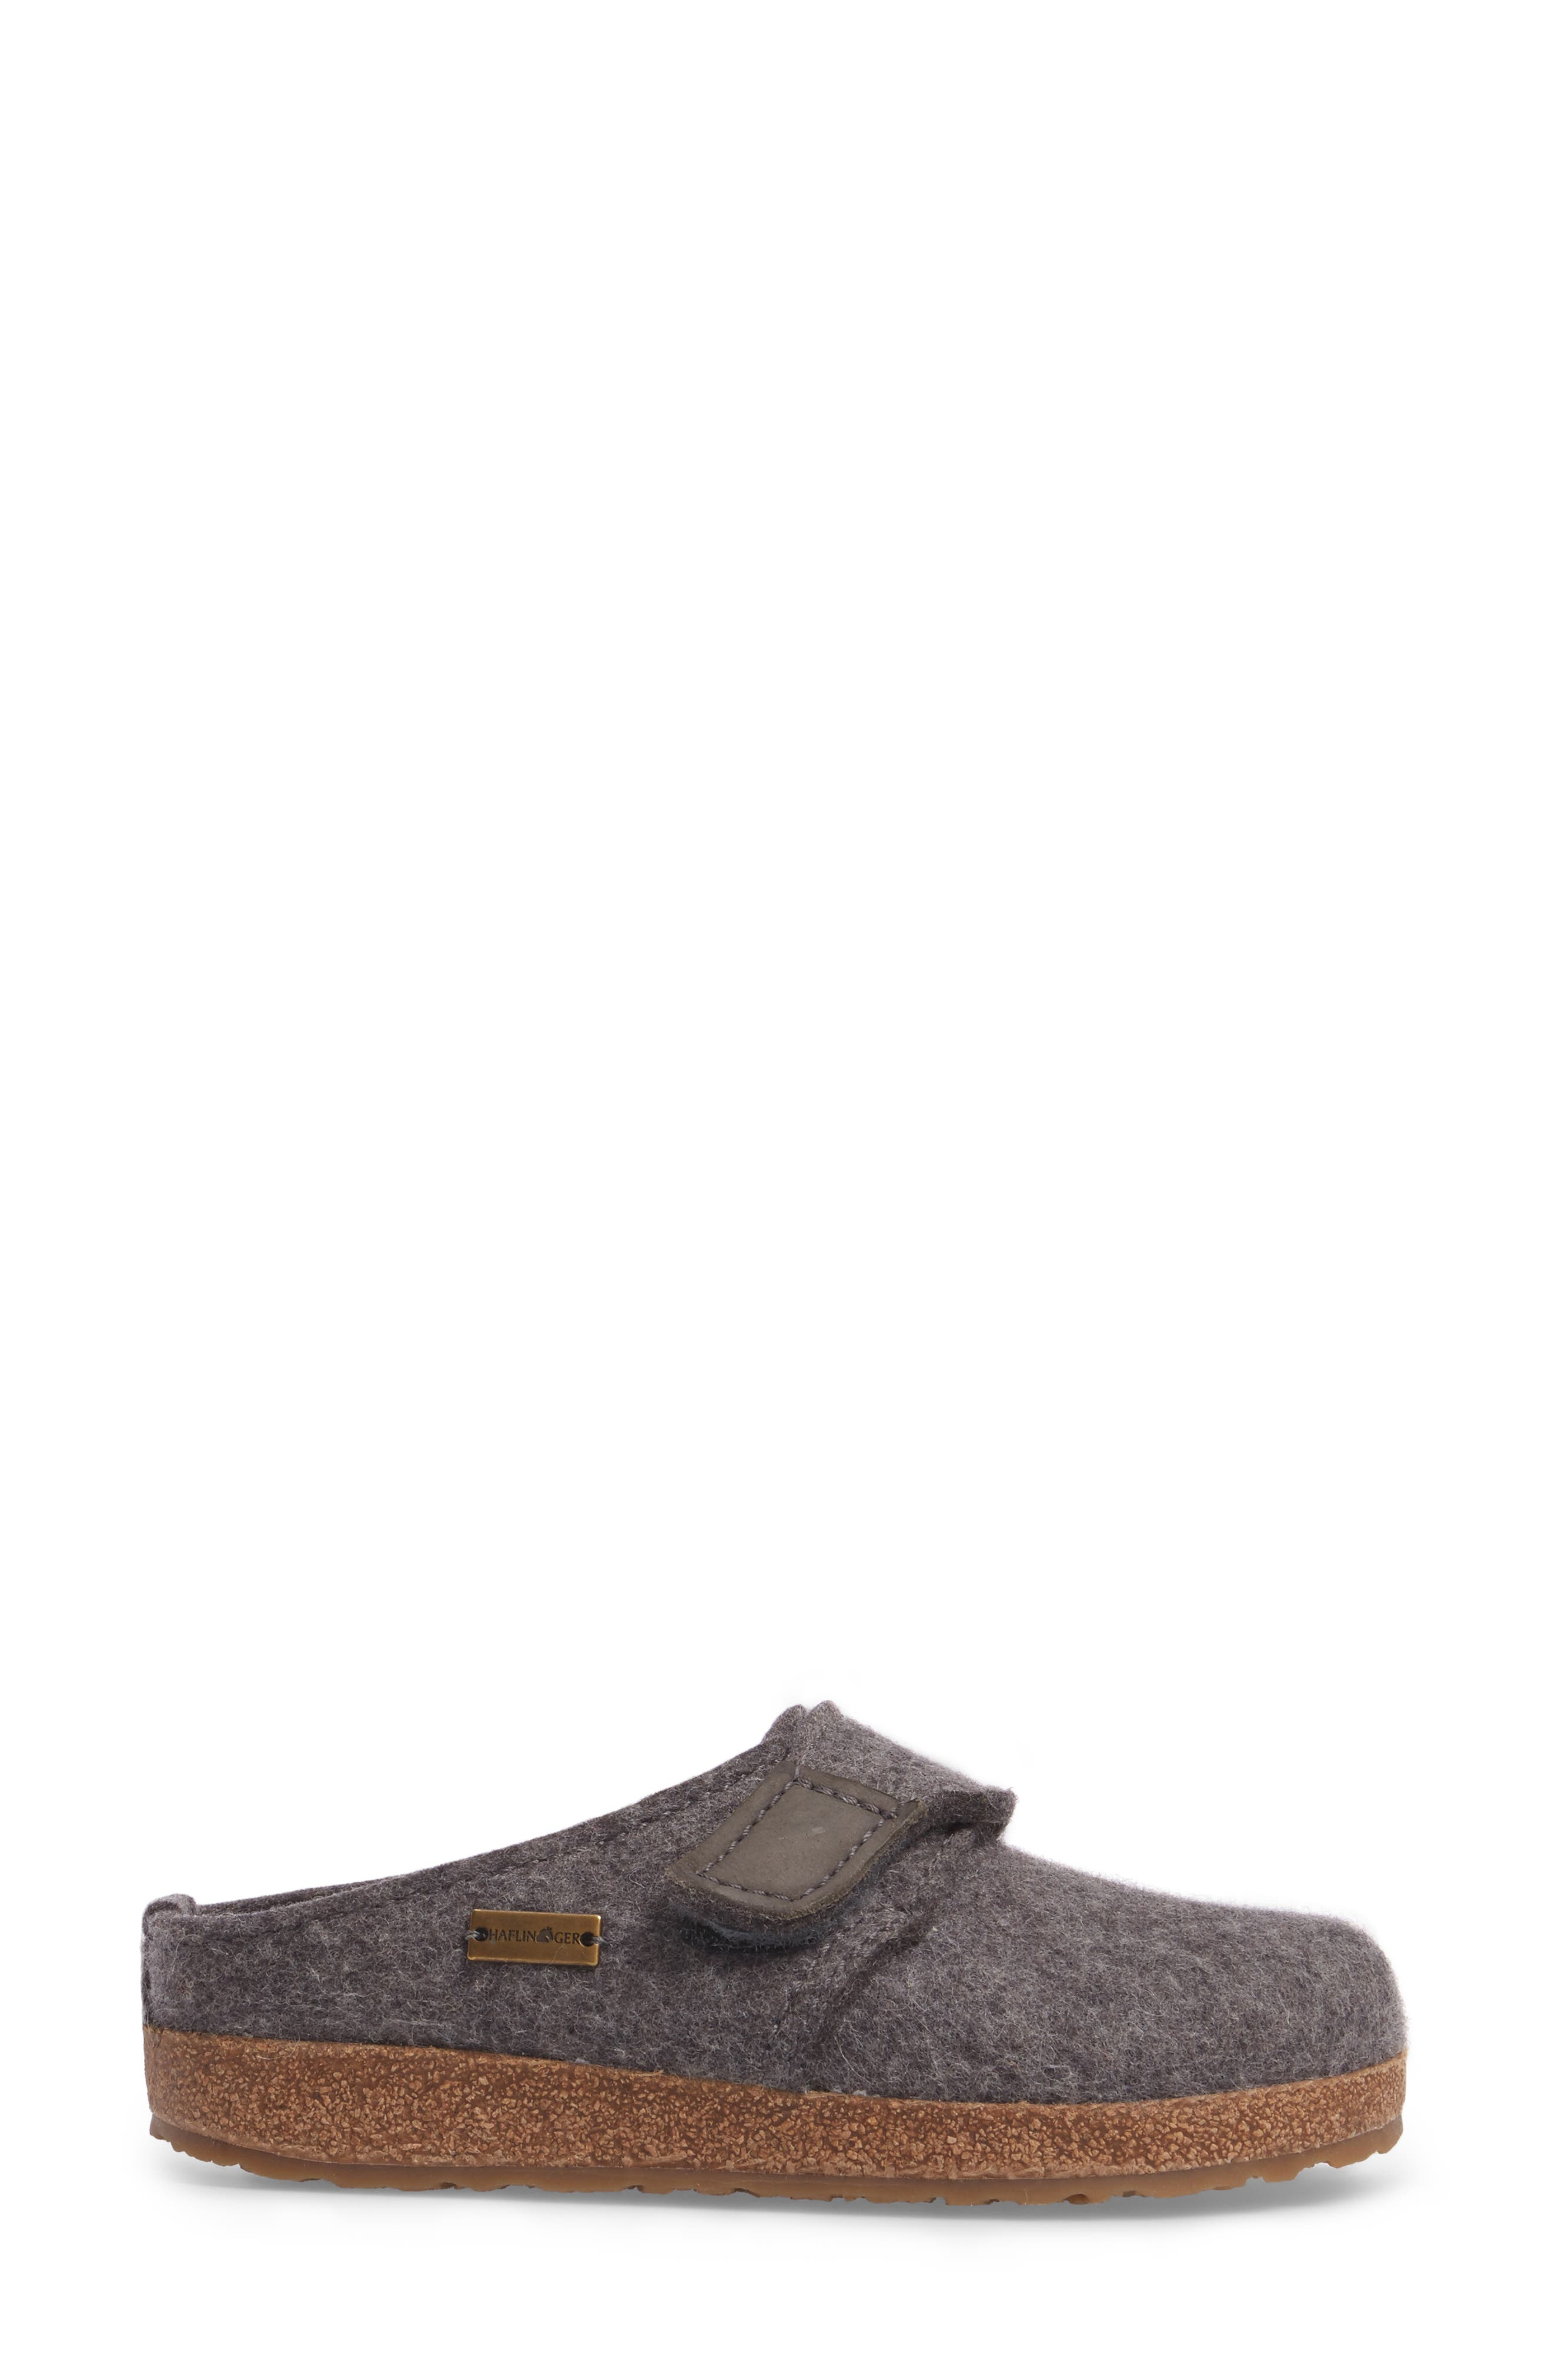 Grizzly Journey Clog Slipper,                             Alternate thumbnail 3, color,                             020